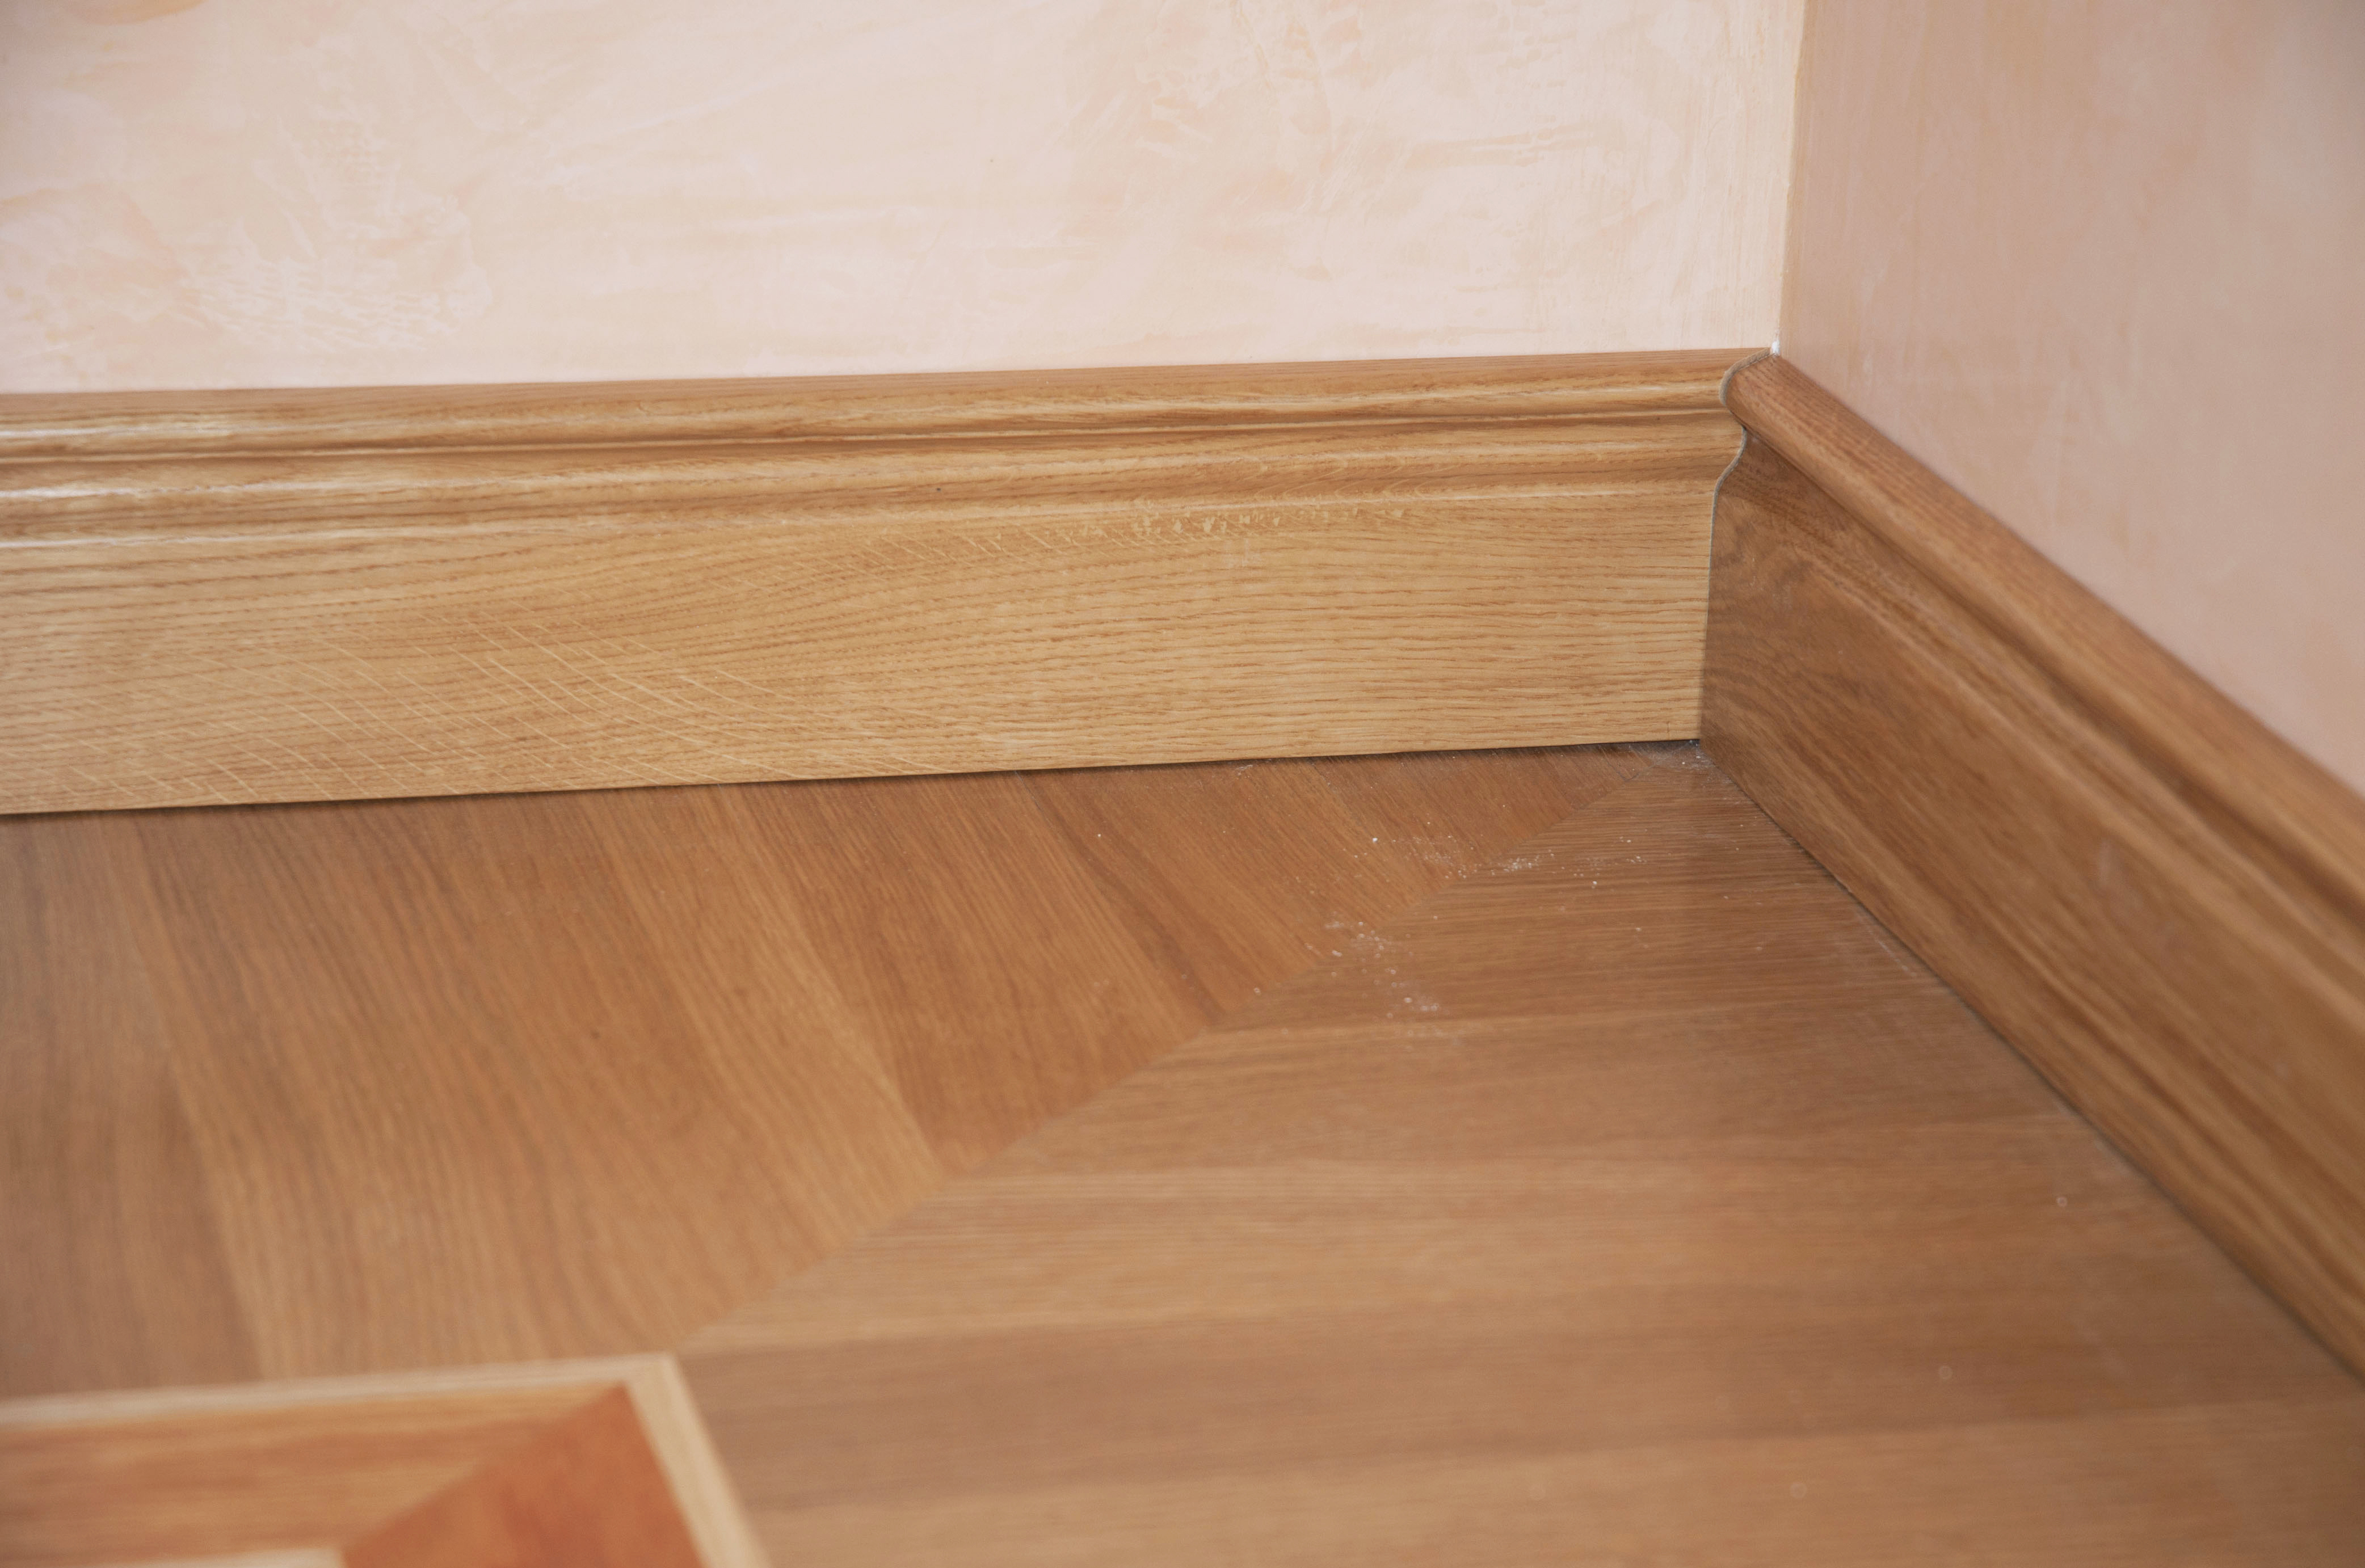 best way to replace baseboard molding